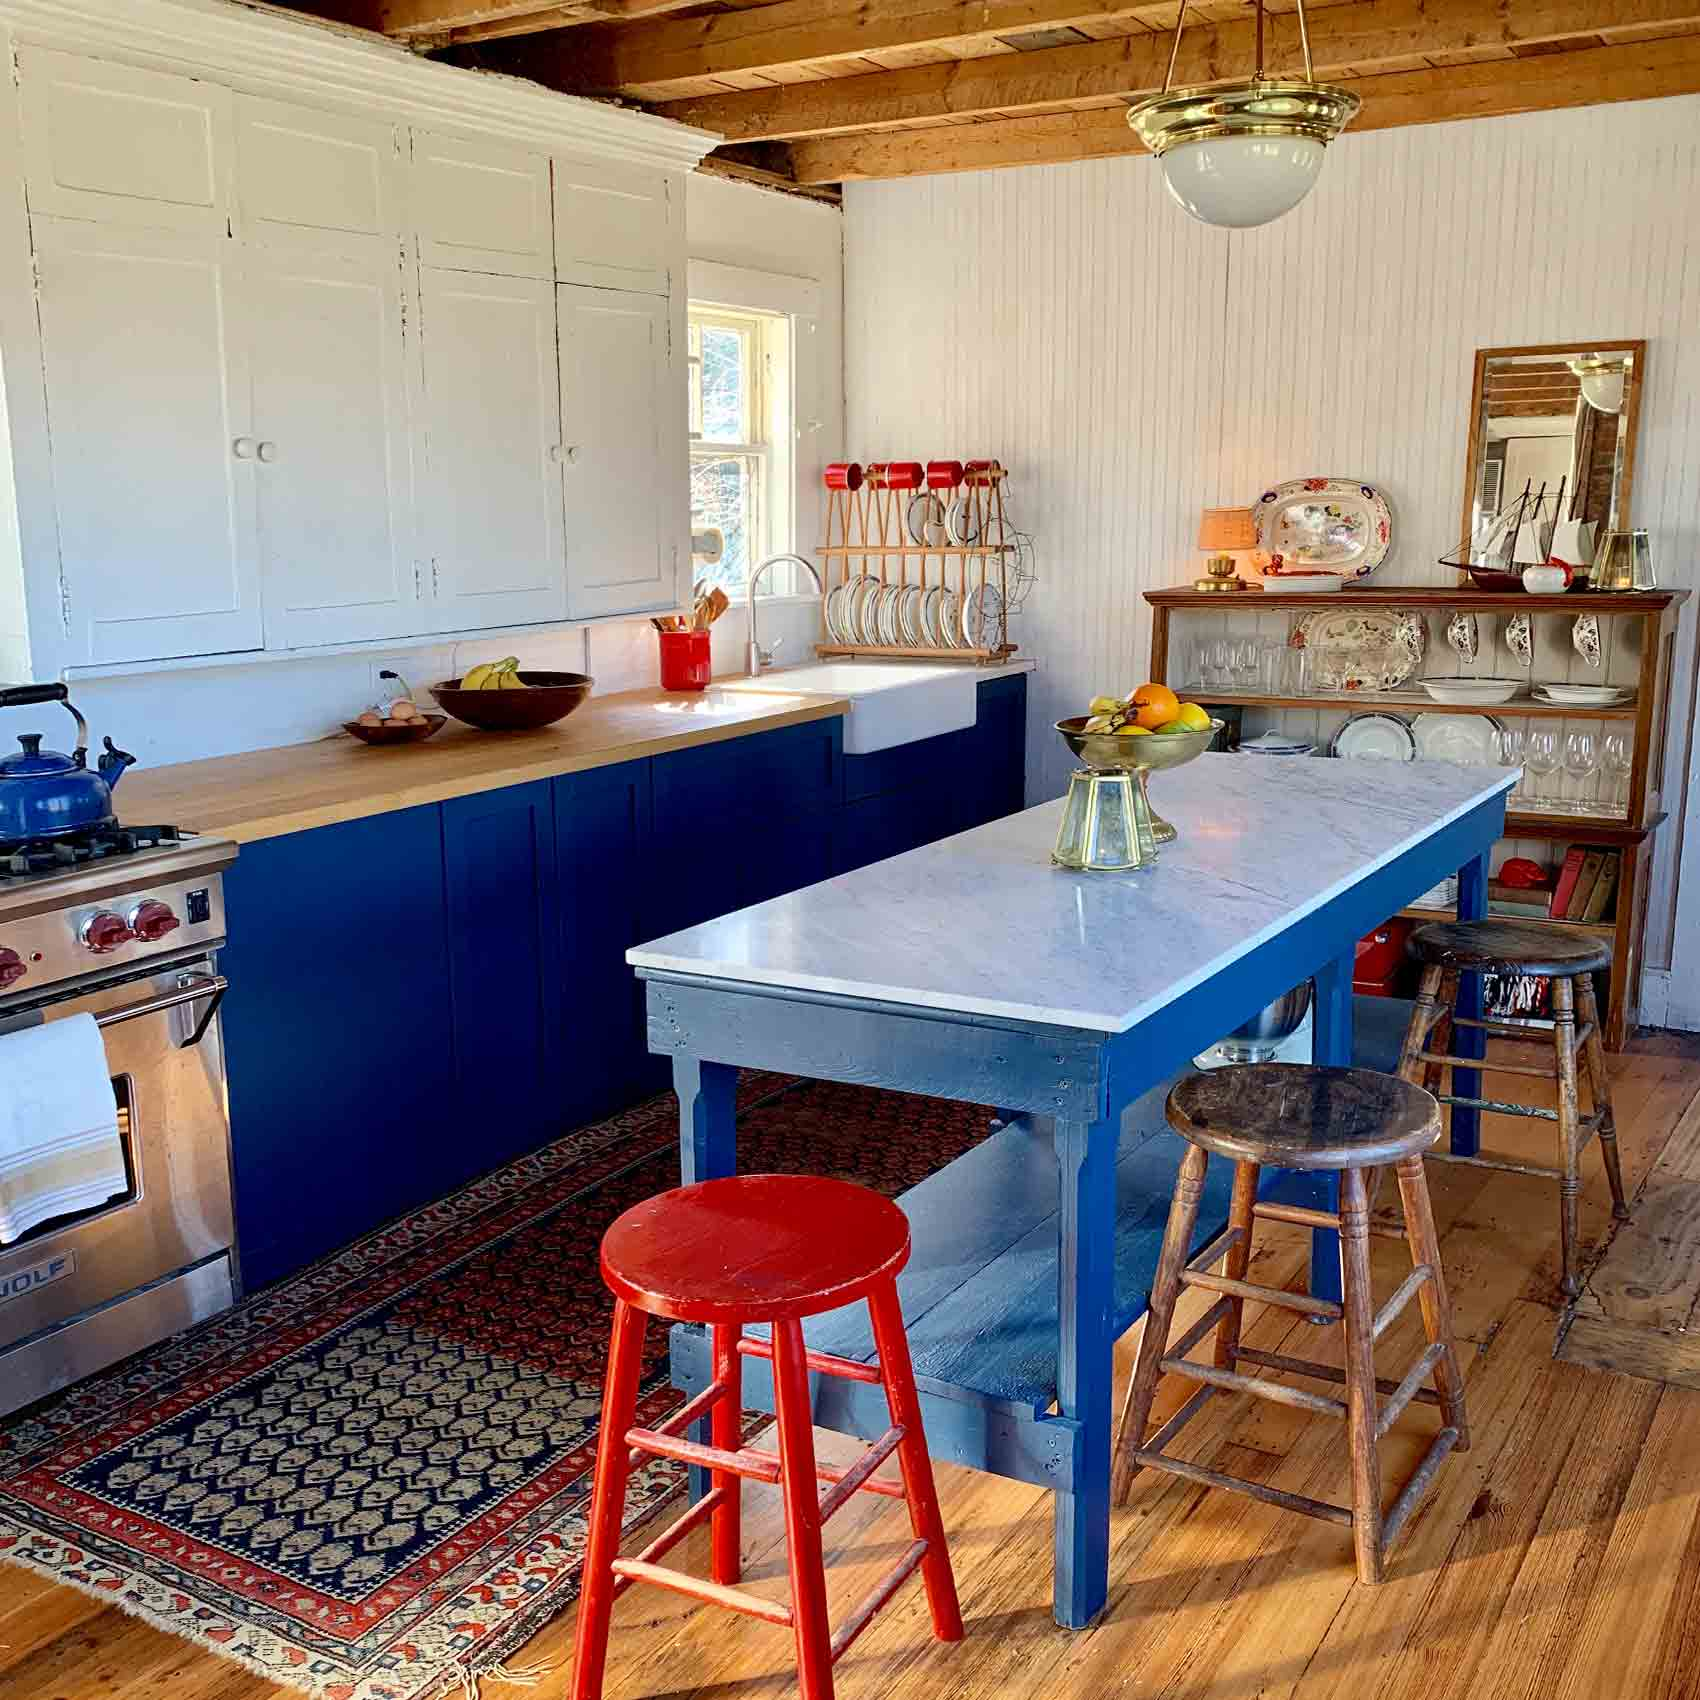 Before & After: A Holiday Home in Coastal Maine, Design*Sponge